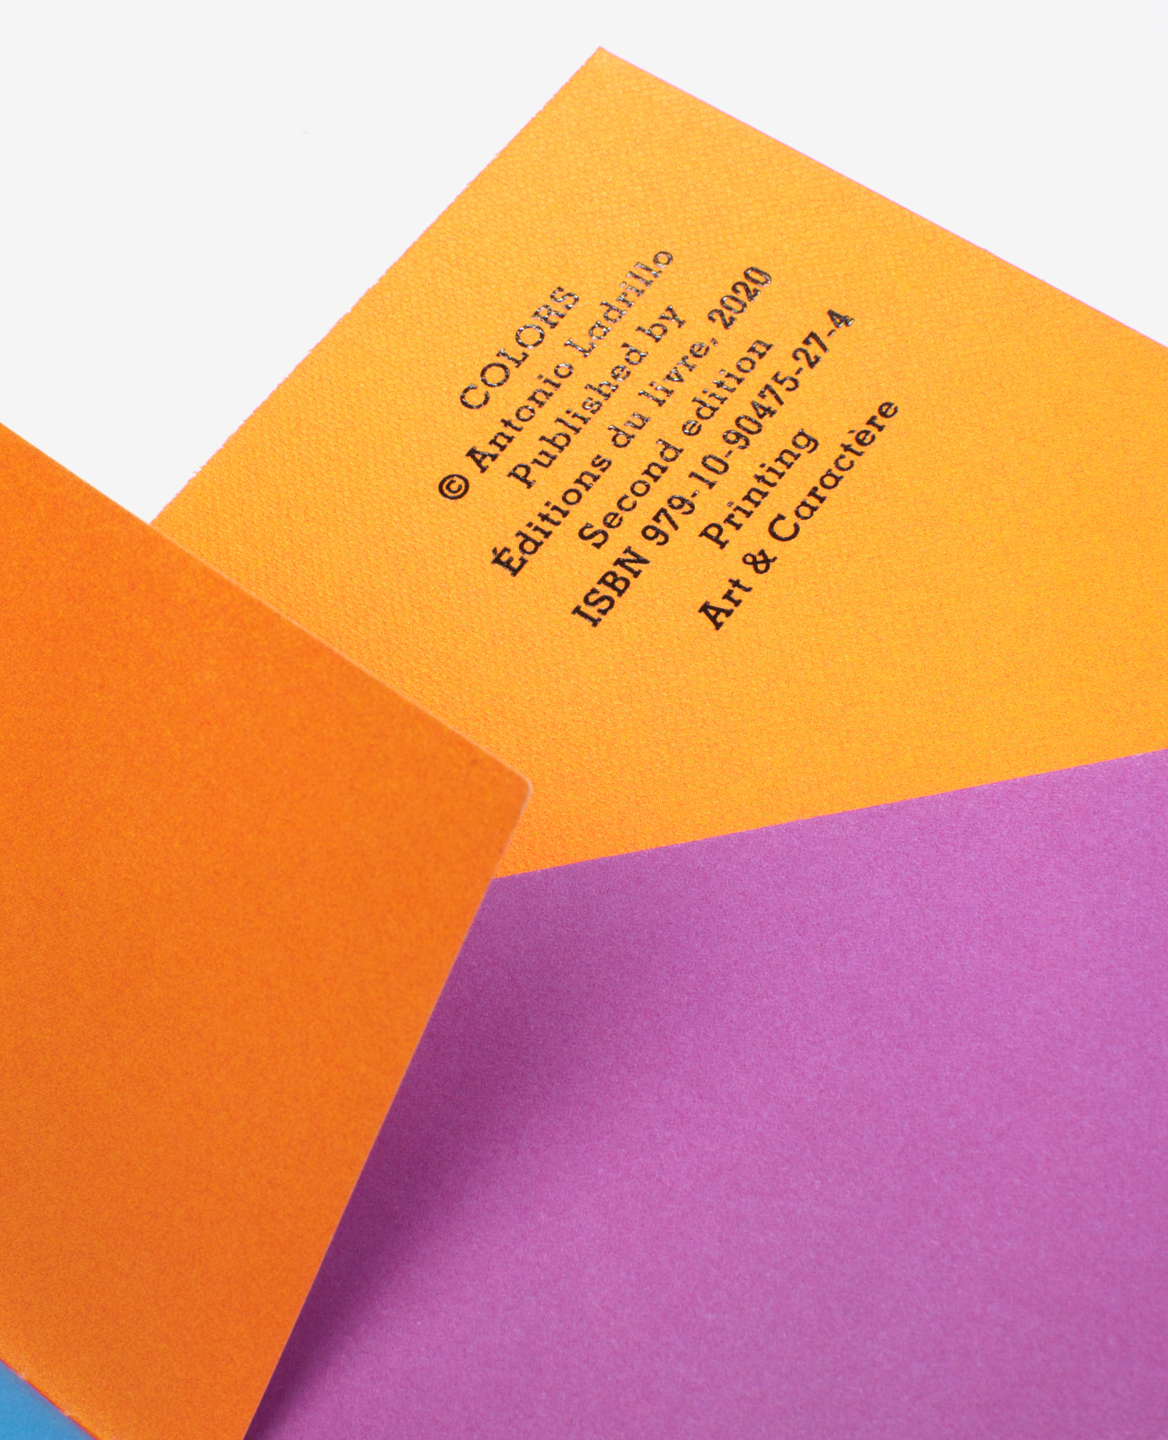 Brilliant foil colophon of the book Colors by Antonio Ladrillo published by Éditions du livre